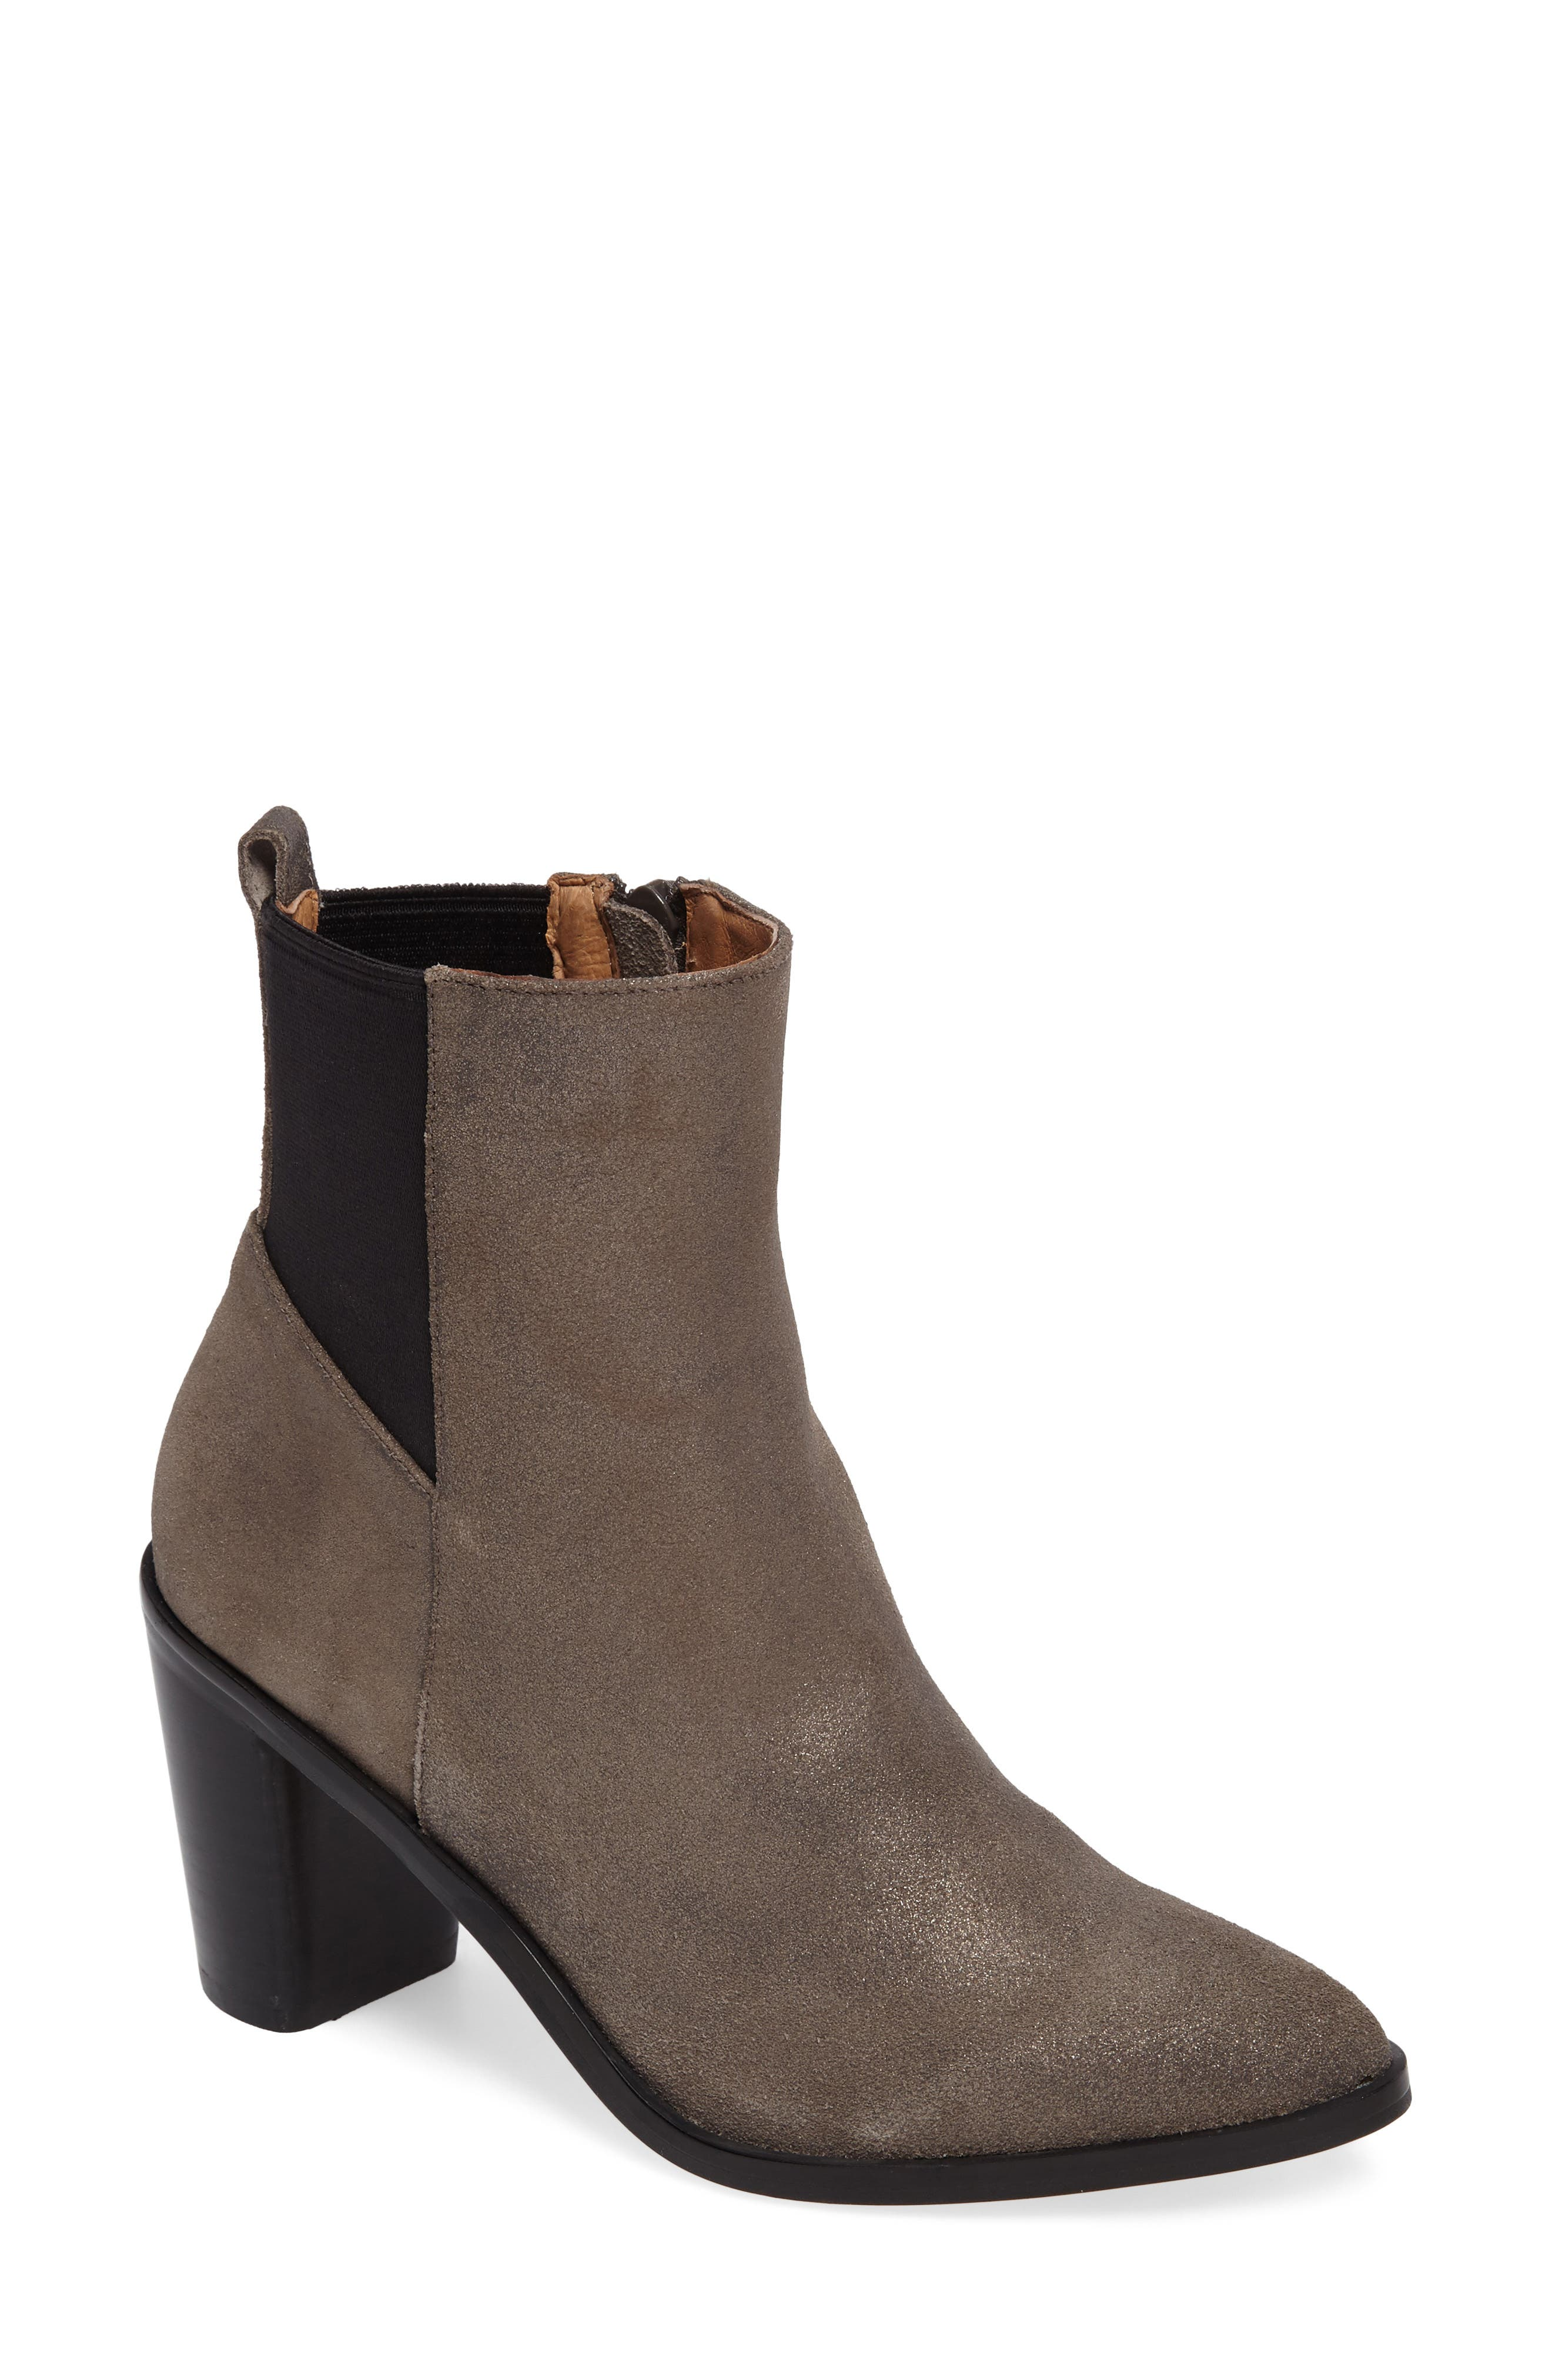 Main Image - Corso Como Hurray Bootie (Women)